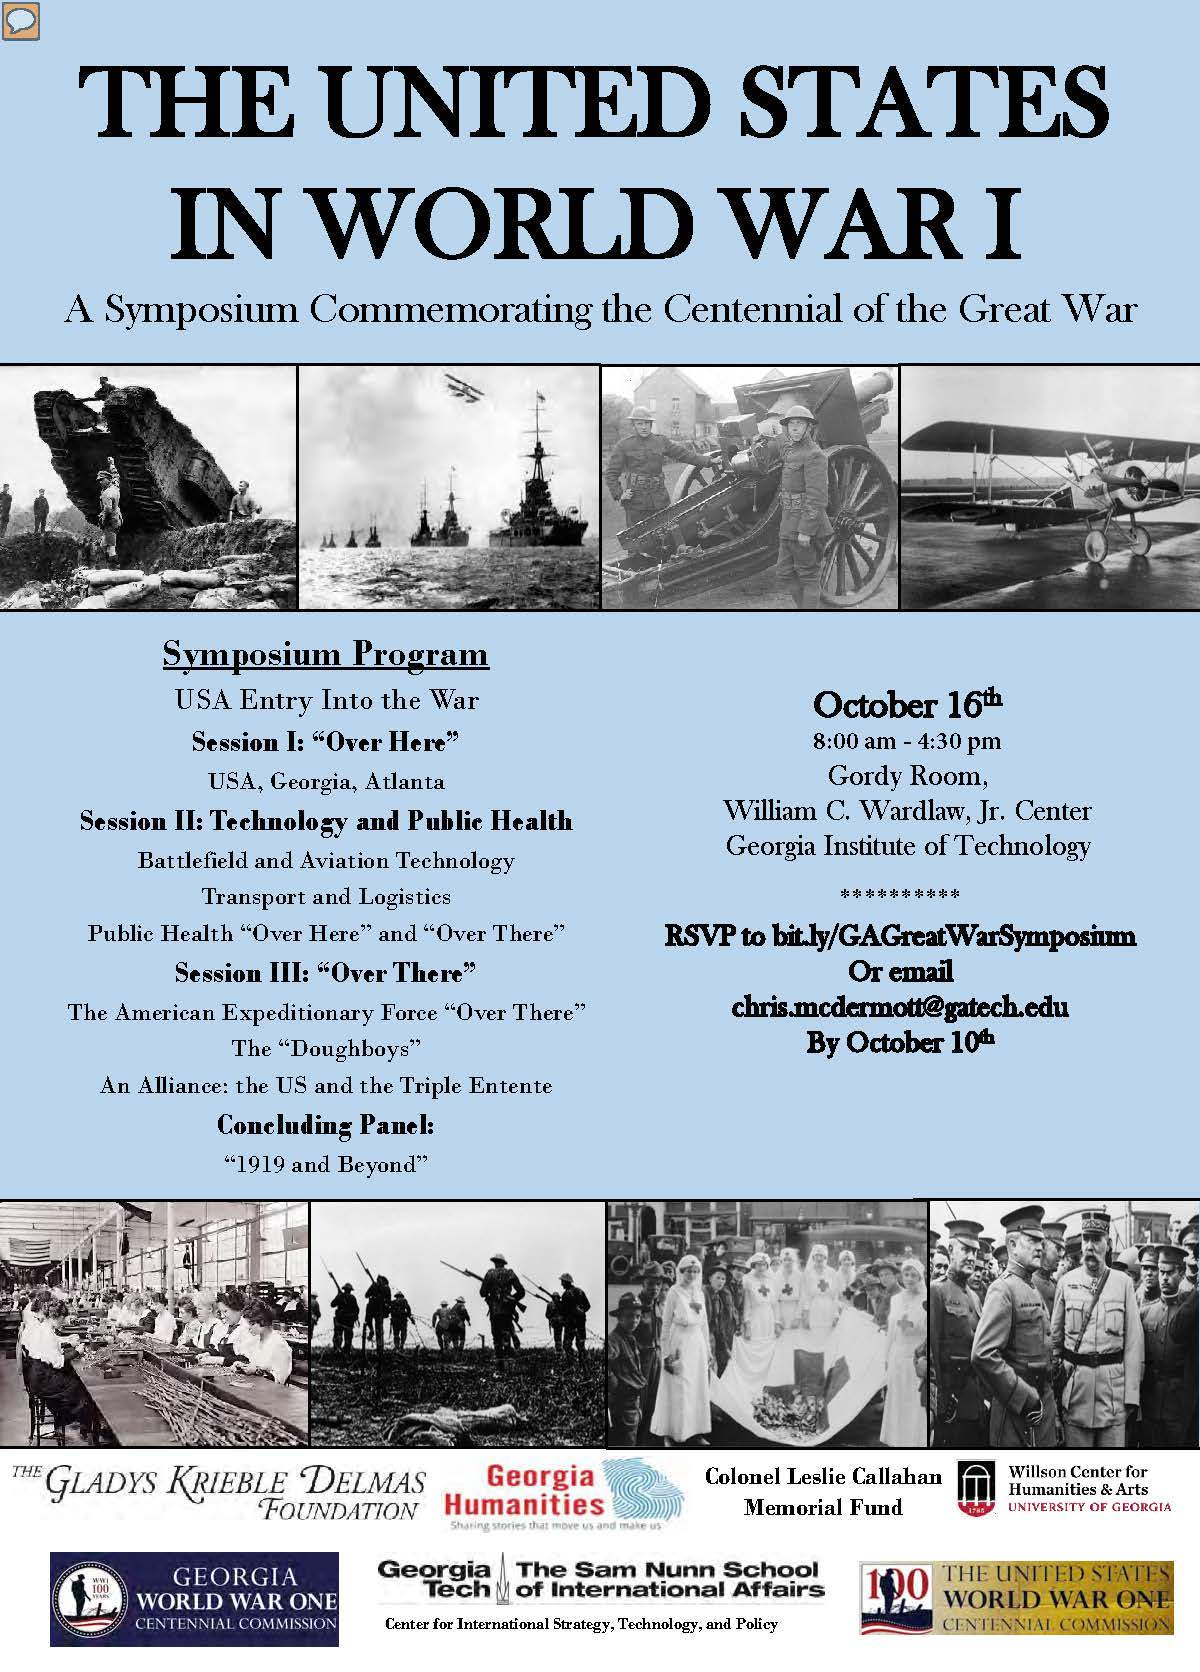 Poster advertising a symposium commemorating the Centennial of the Great War.  October 16th, 2018. 8:00am - 4:30pm Gordy Room, William C. Wardlaw, Jr. Center at Georgia Tech